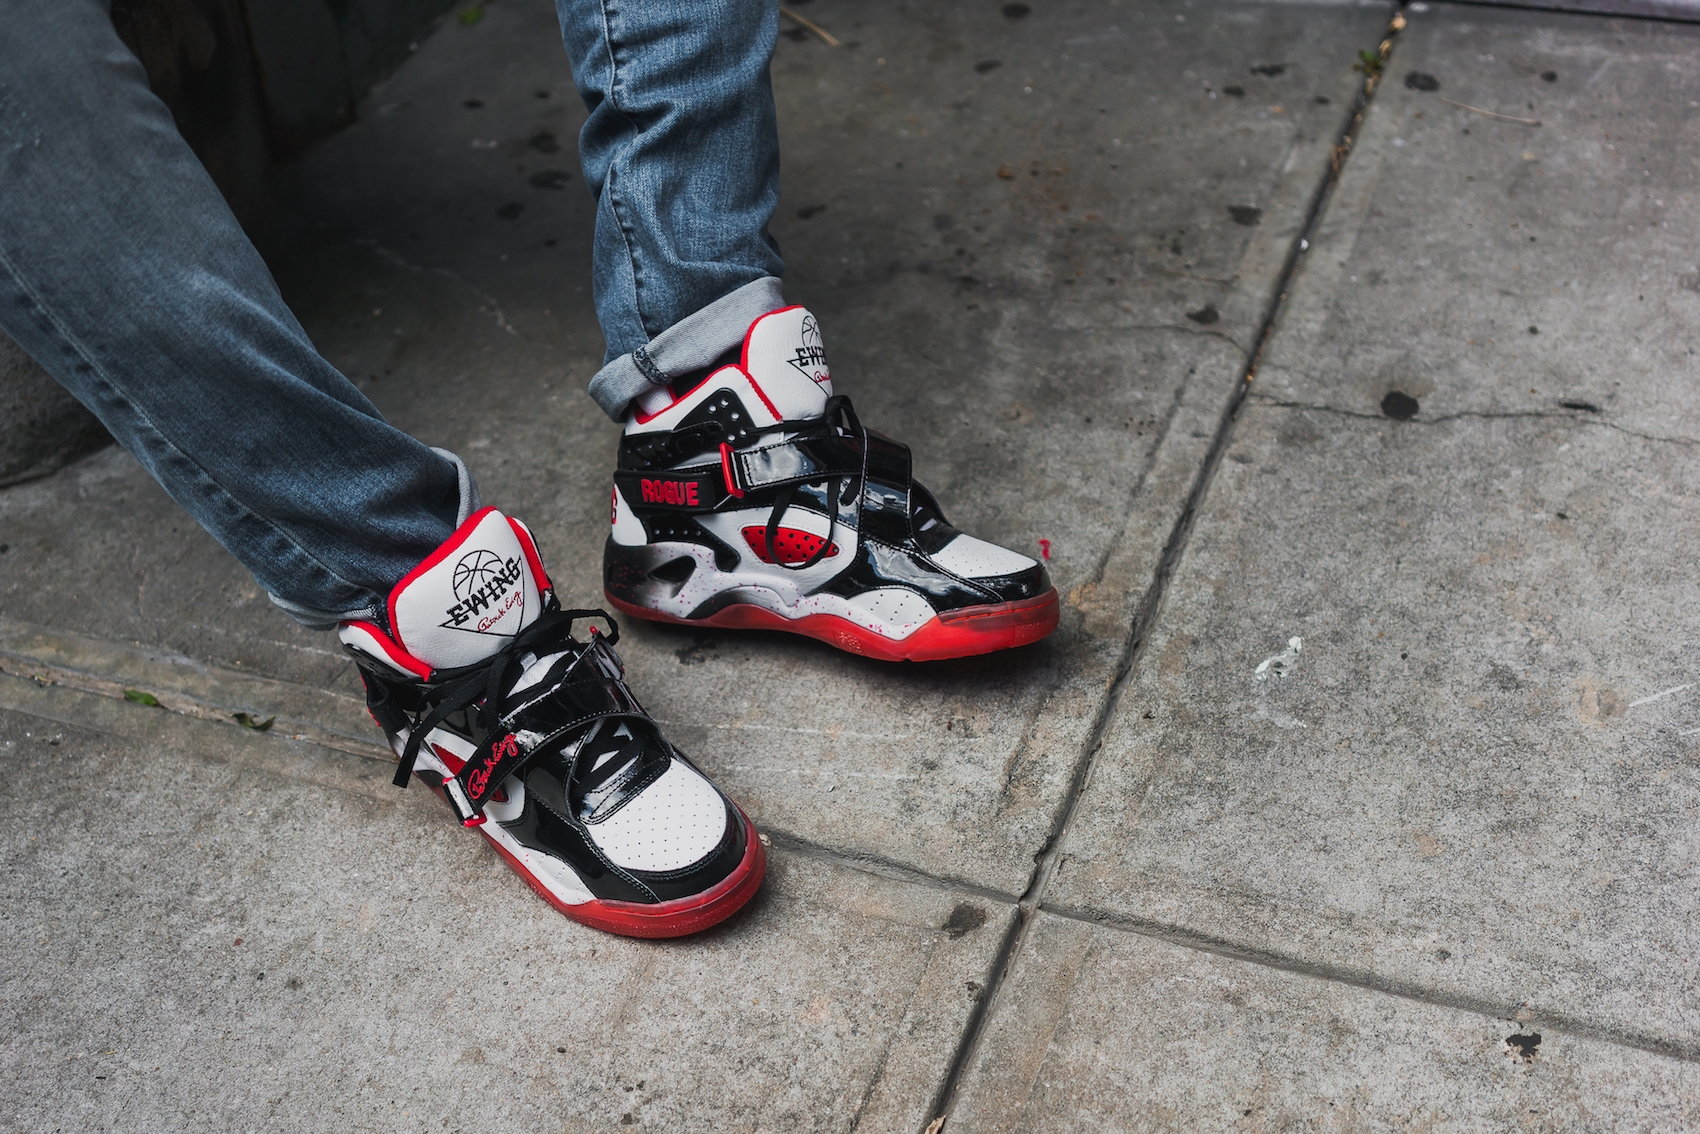 Ewing rogue white black red 26